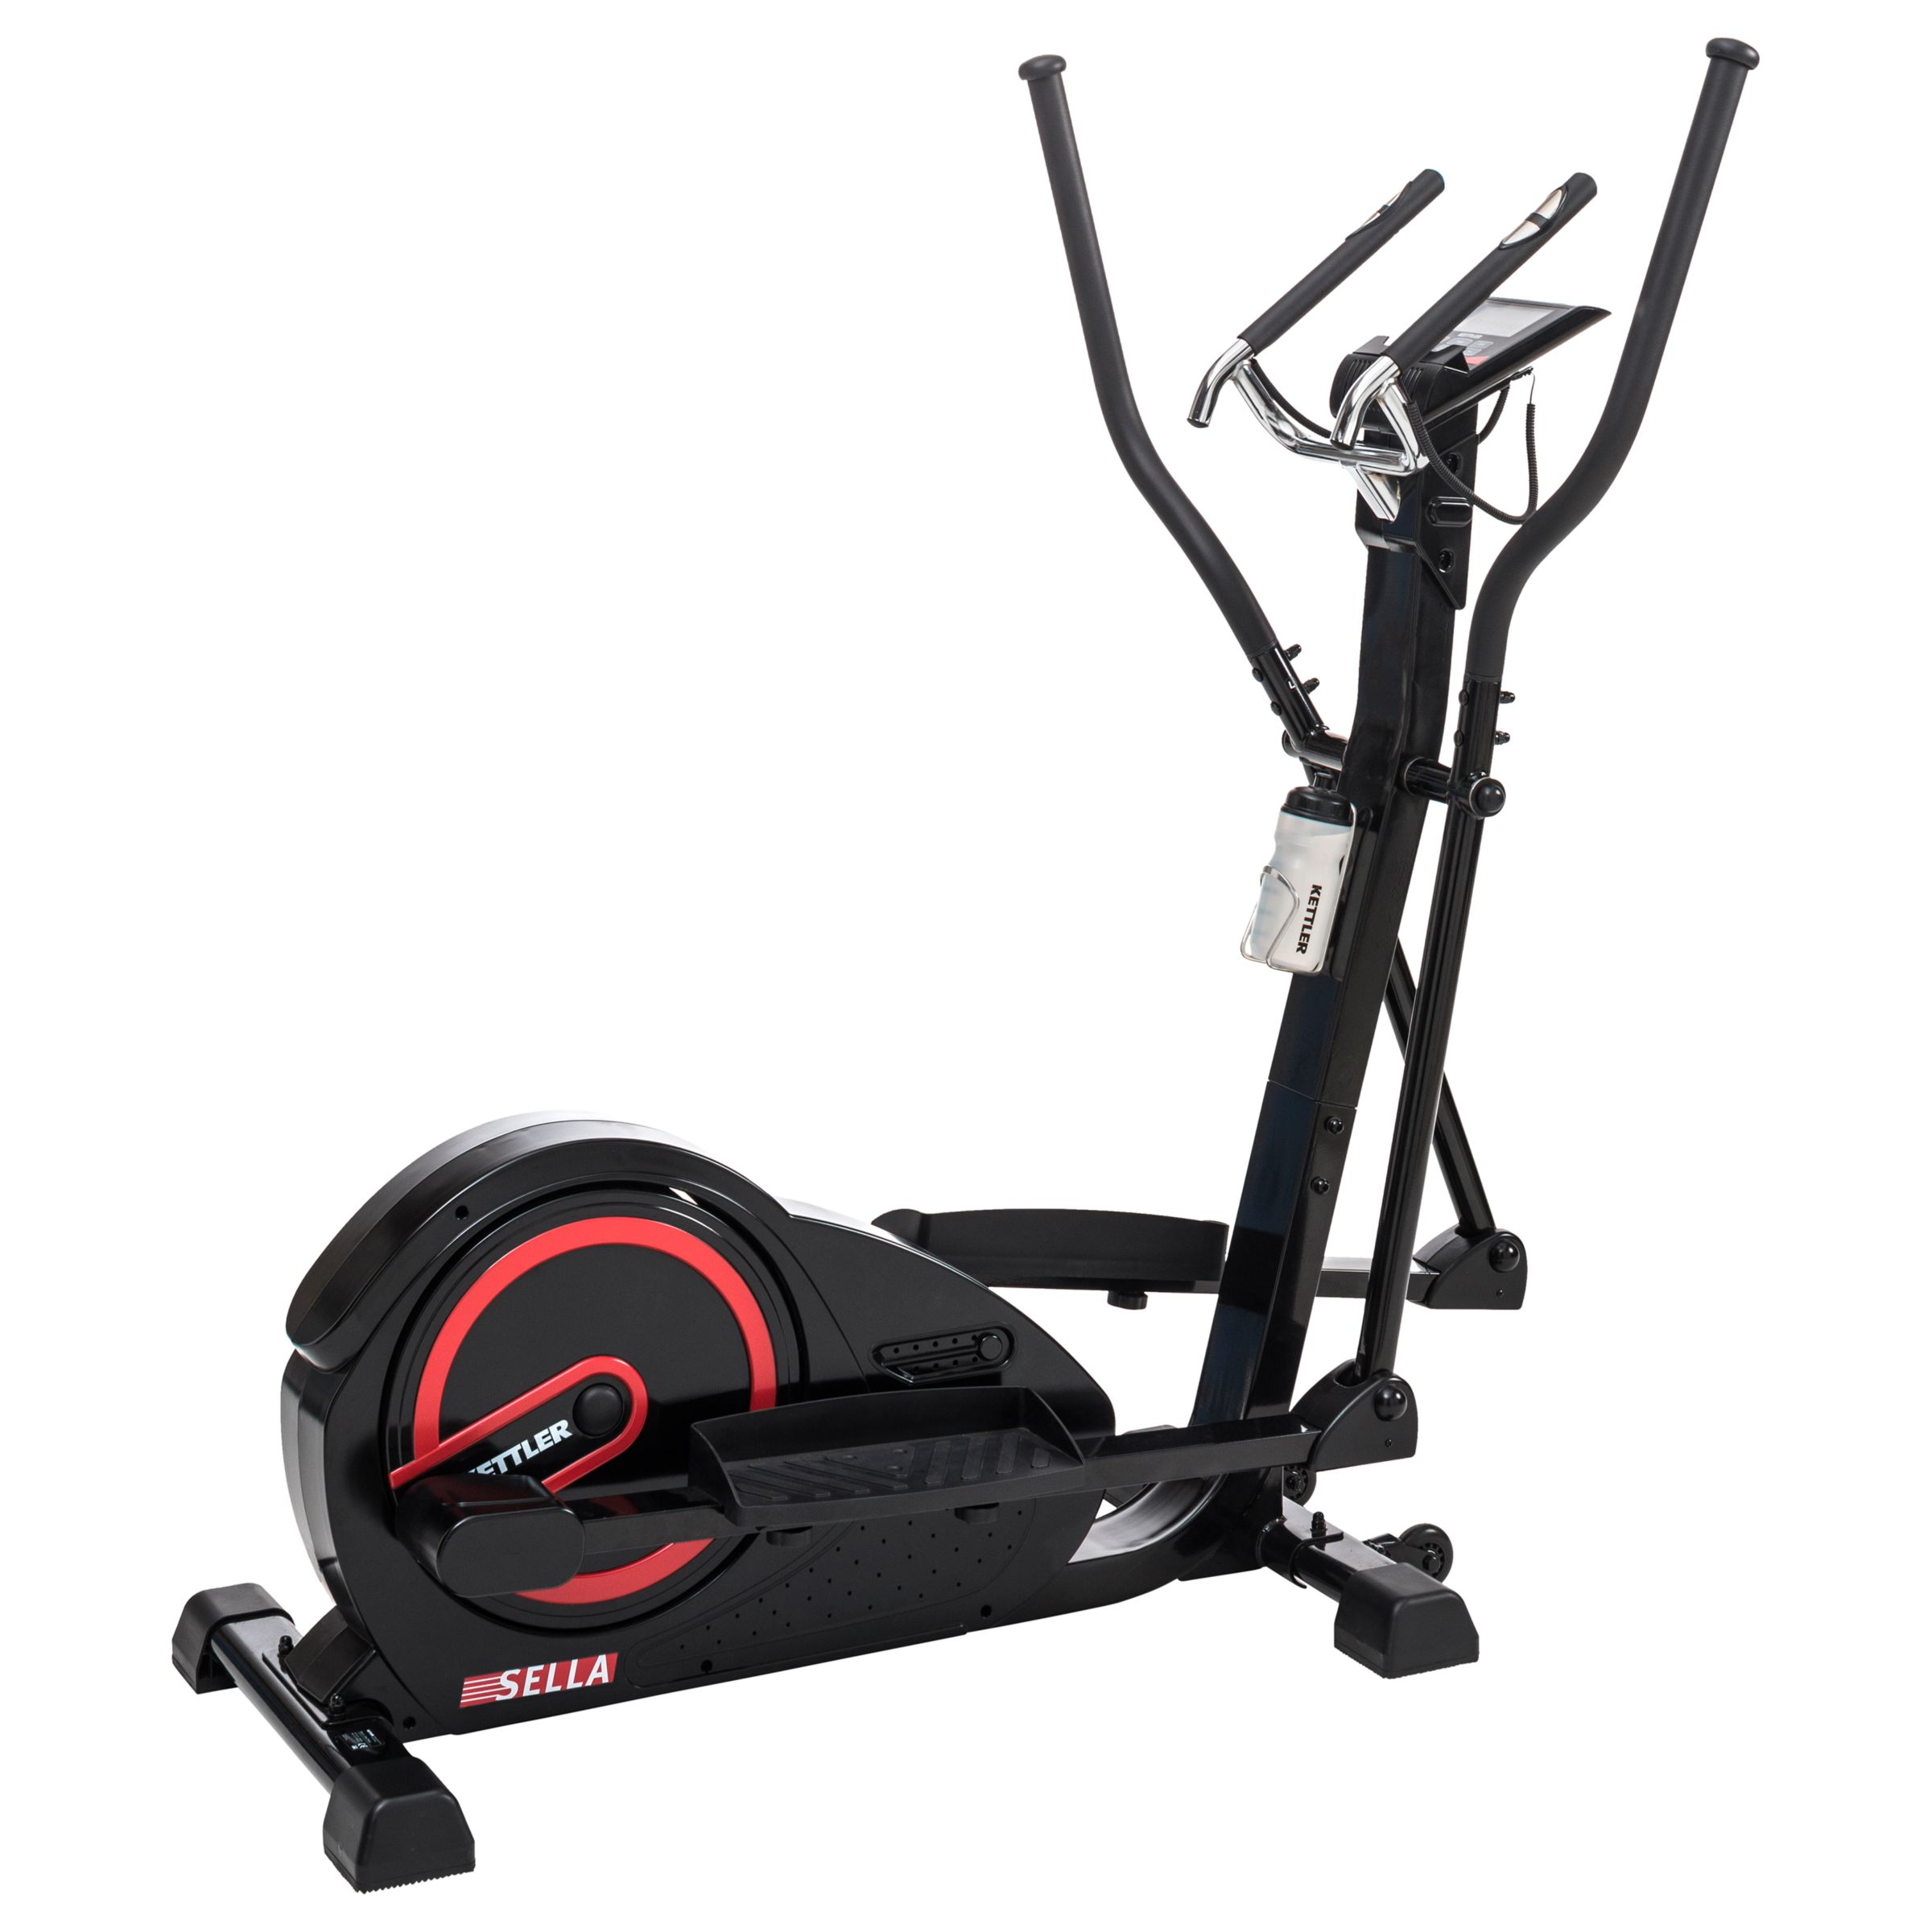 KETTLER Sport KETTLER Sport Sella Cross Trainer, Black/Red